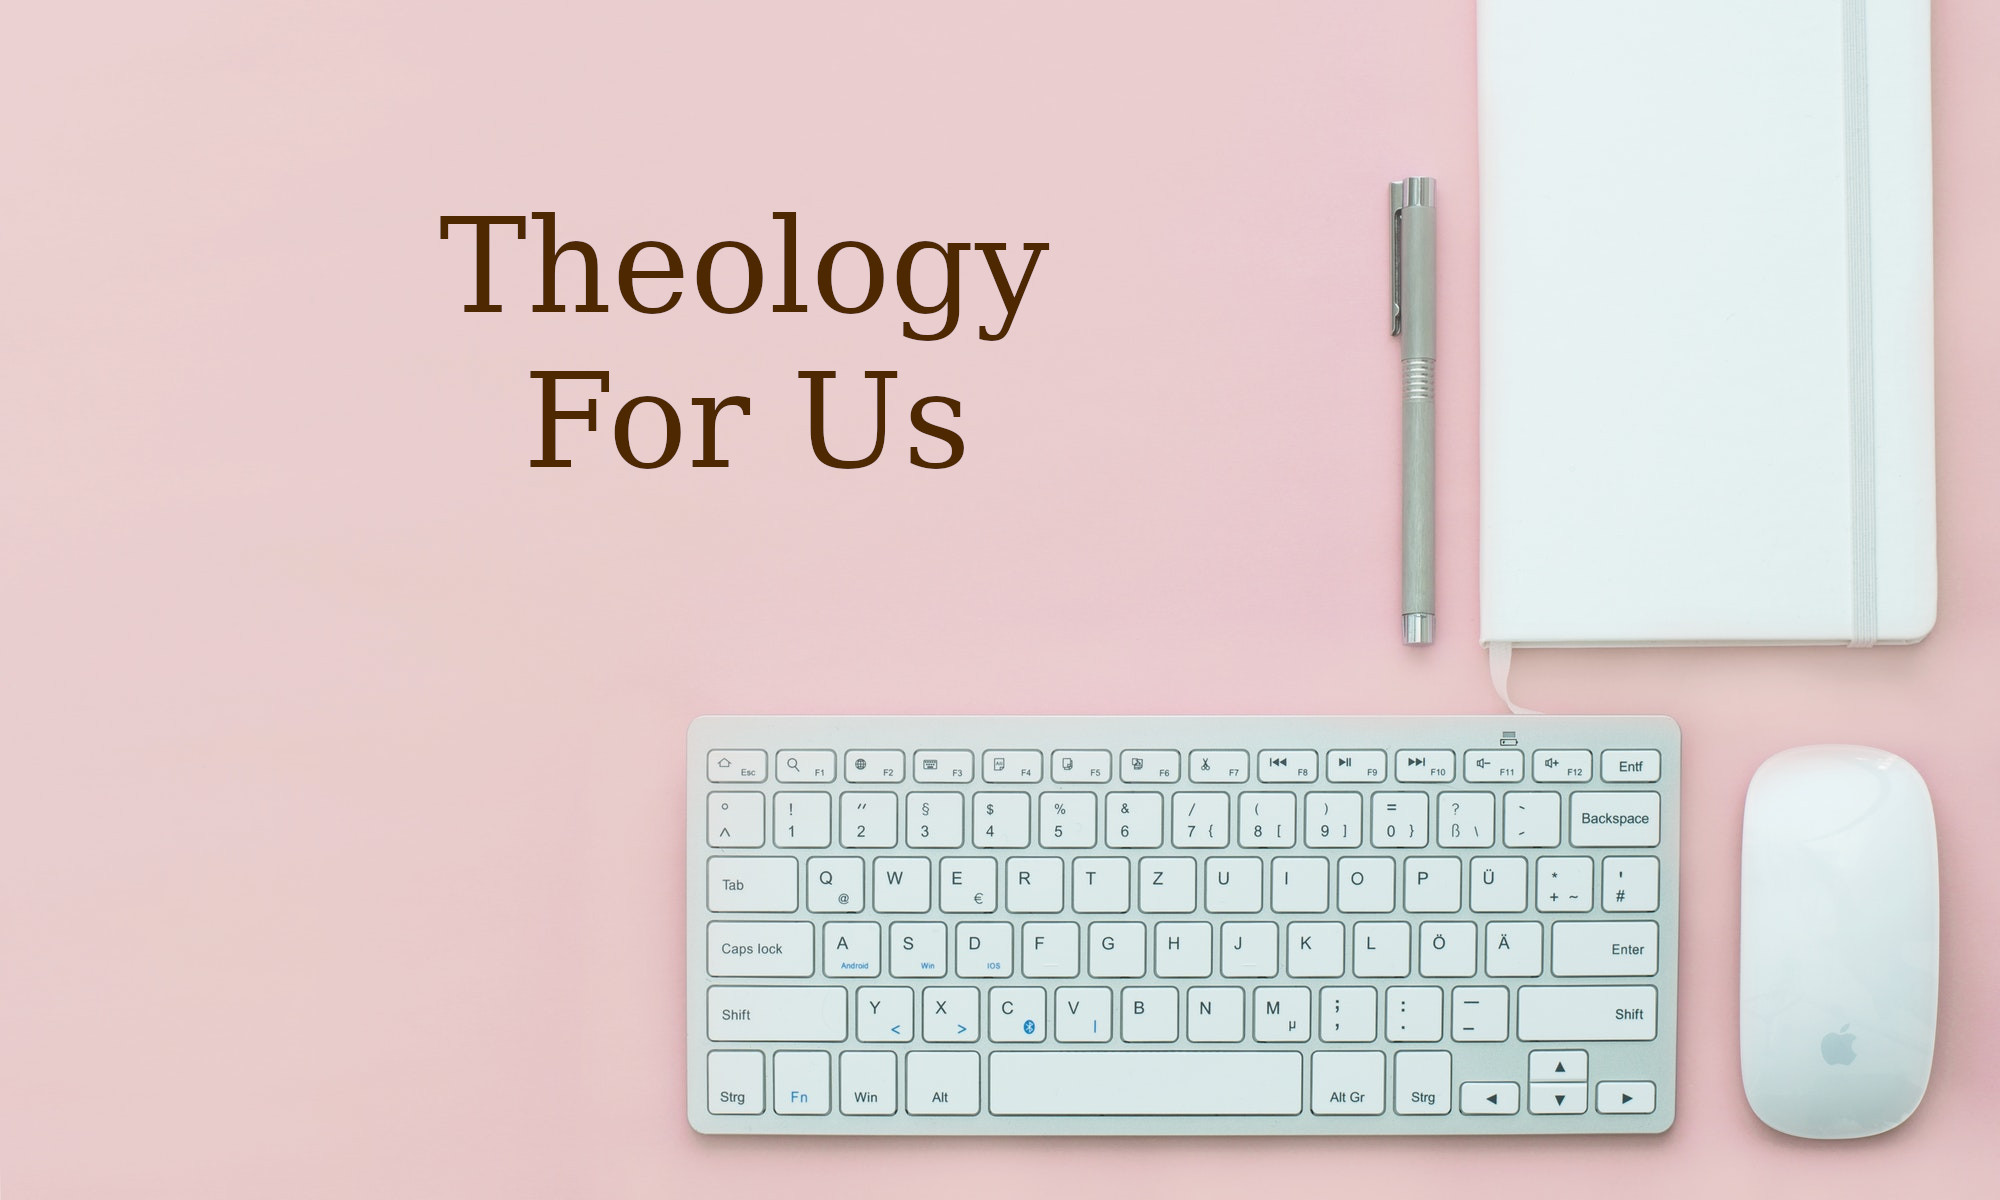 Theology For Us